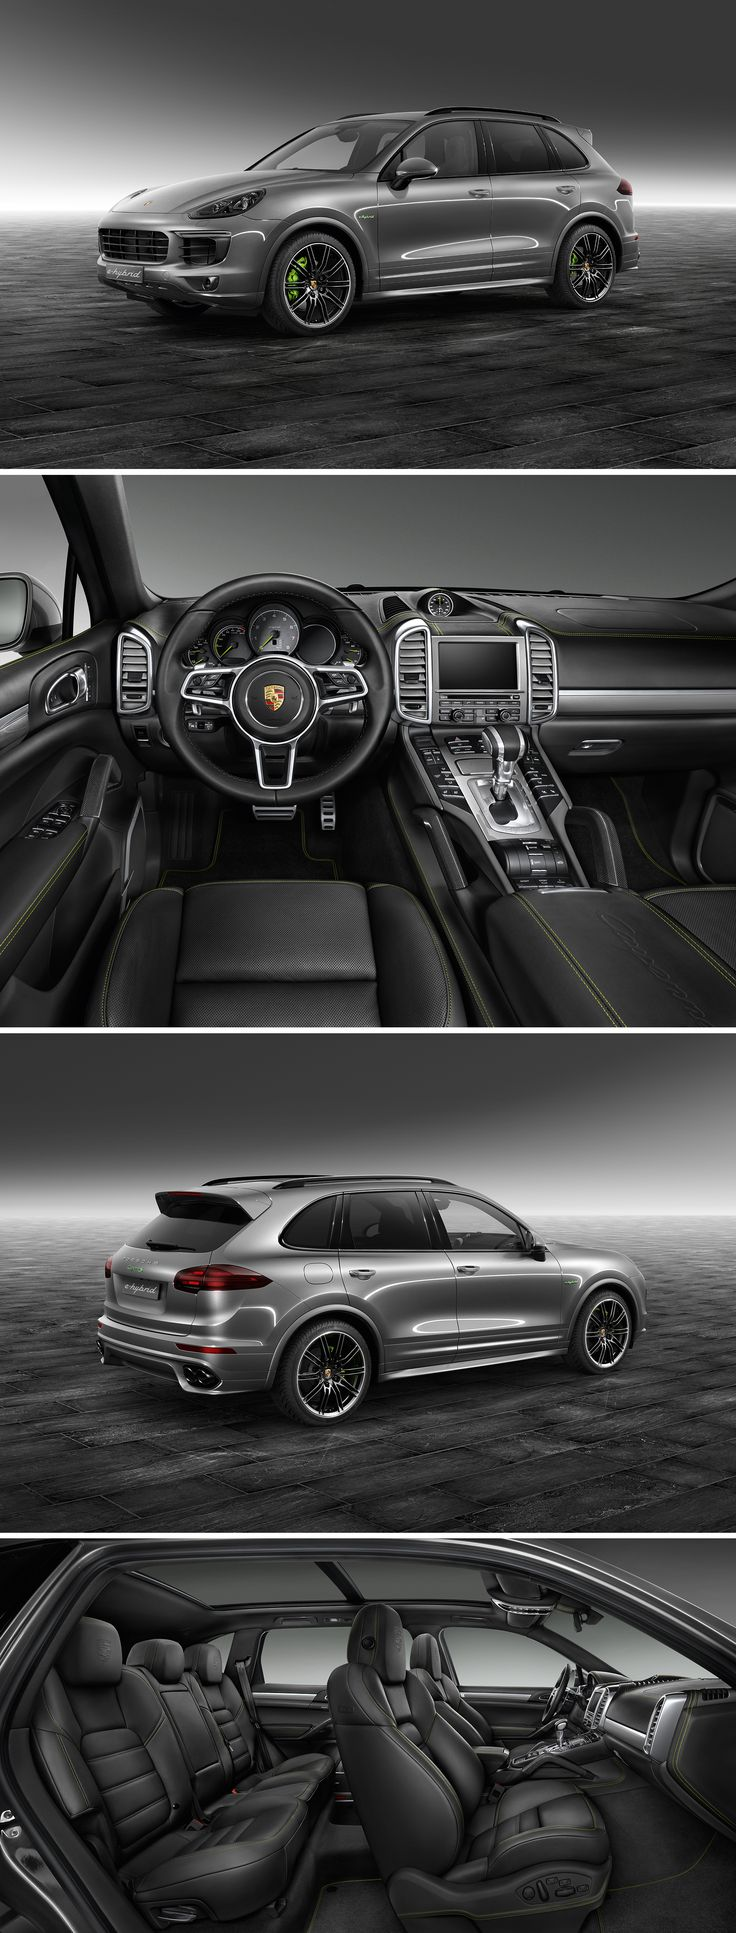 This Cayenne S E-Hybrid from Porsche Exclusive is simply electrifying. From the first glance and down to the smallest detail. Various Porsche Exclusive options emphasize its sporty, muscular appearance.   *Combined fuel consumption in accordance with EU 6: 3.4 l/100 km, CO2 emissions 79 g/km; Electricity consumption 20.8 kWh/100 km